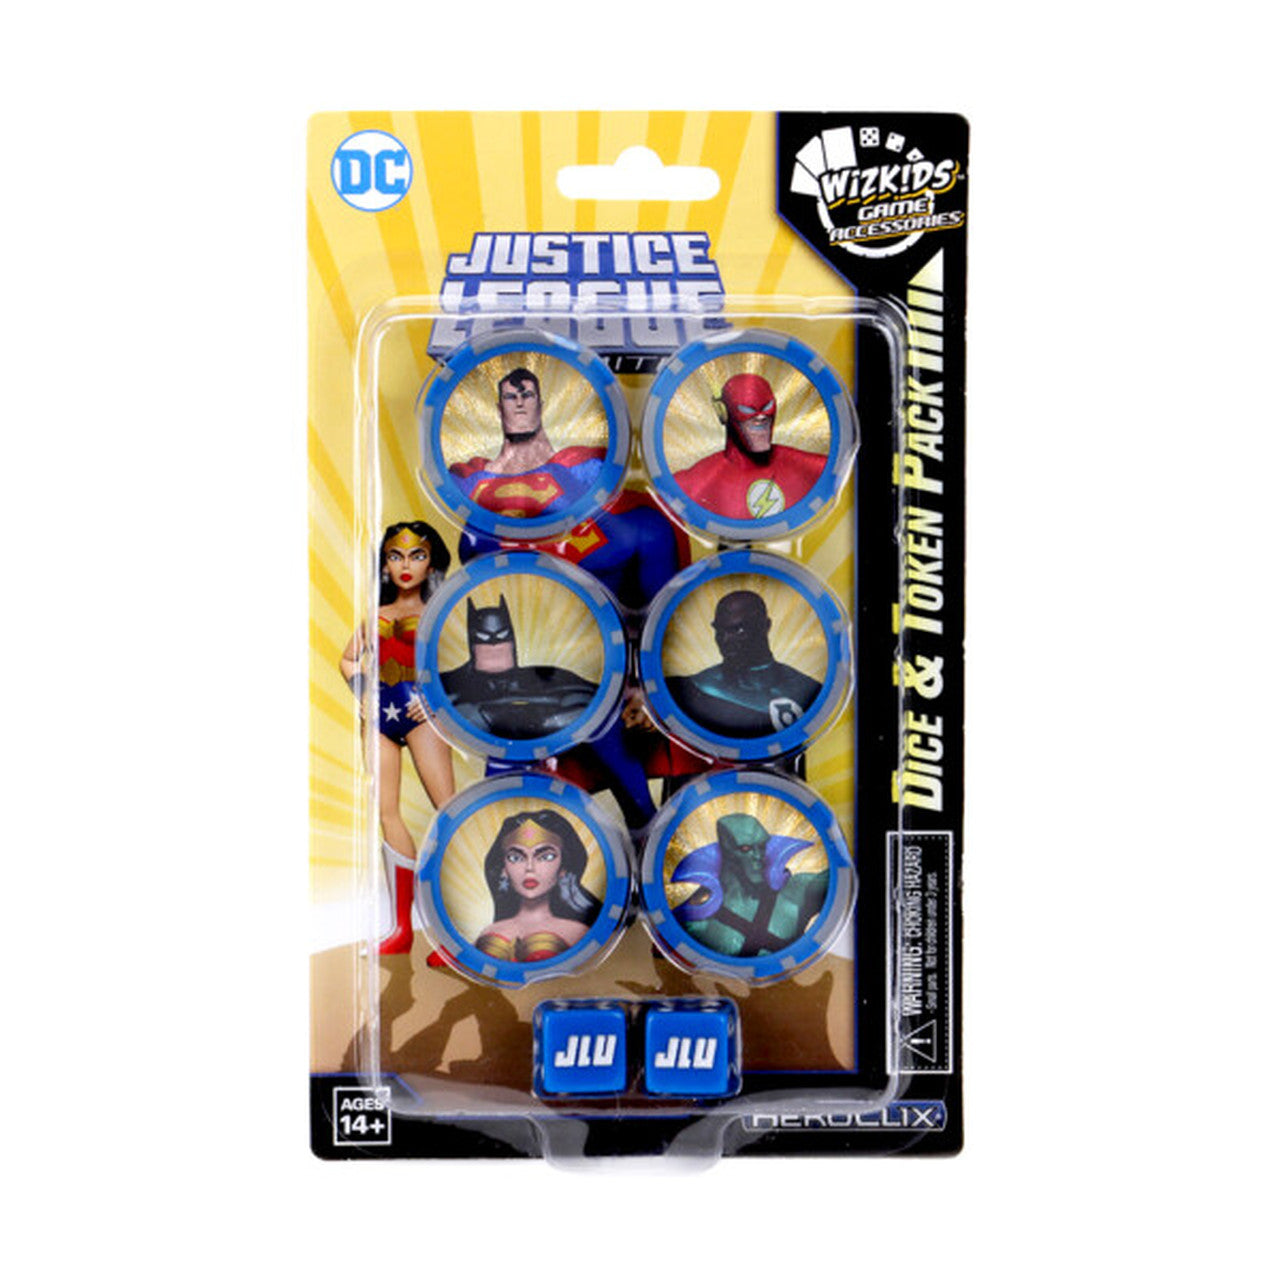 DC HeroClix: Justice League Unlimited Dice and Token Se | Emerald Dragon Games